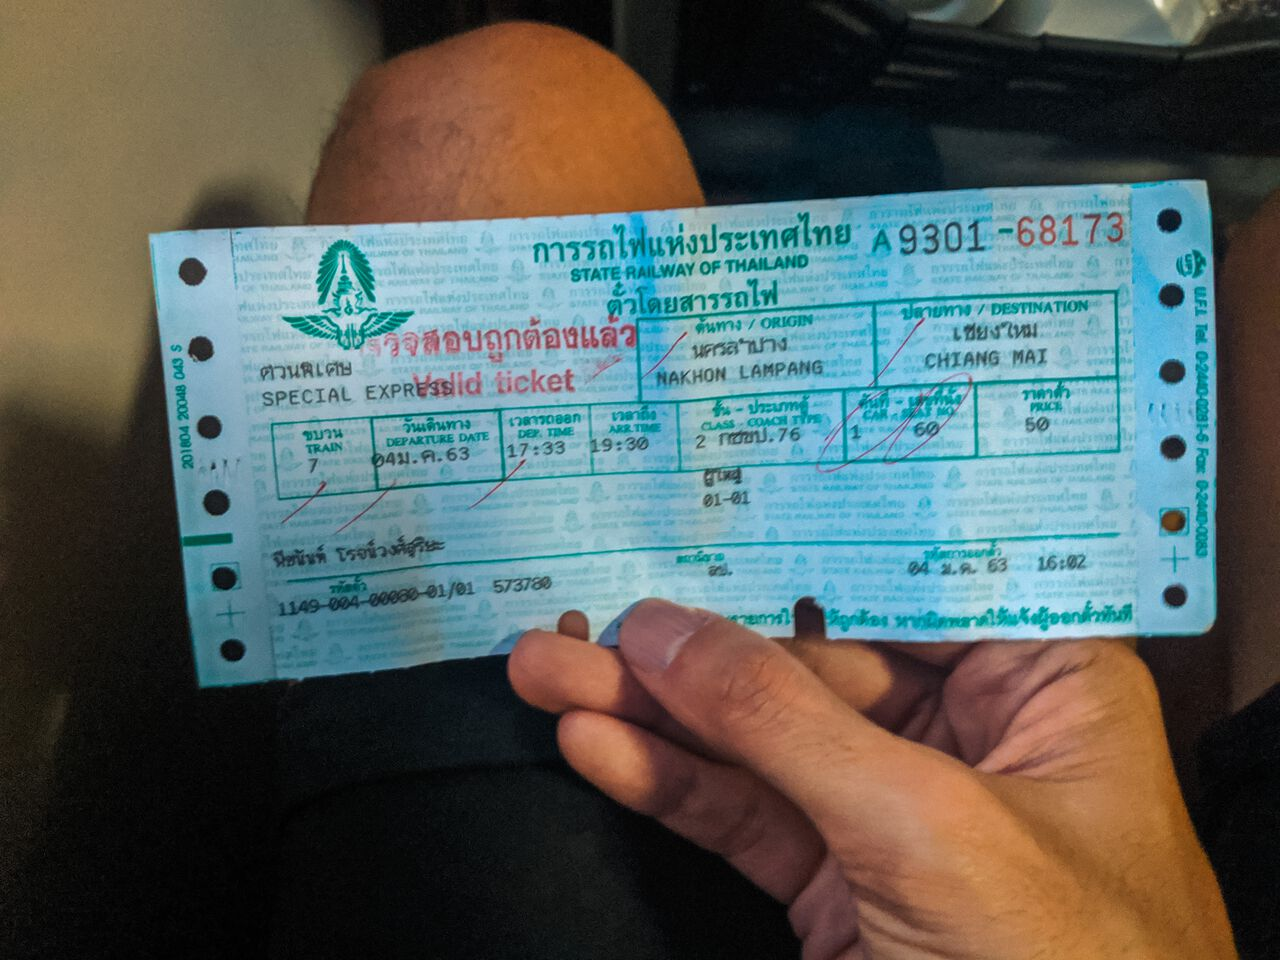 A train ticket from Lampang to Chiang Mai, Thailand